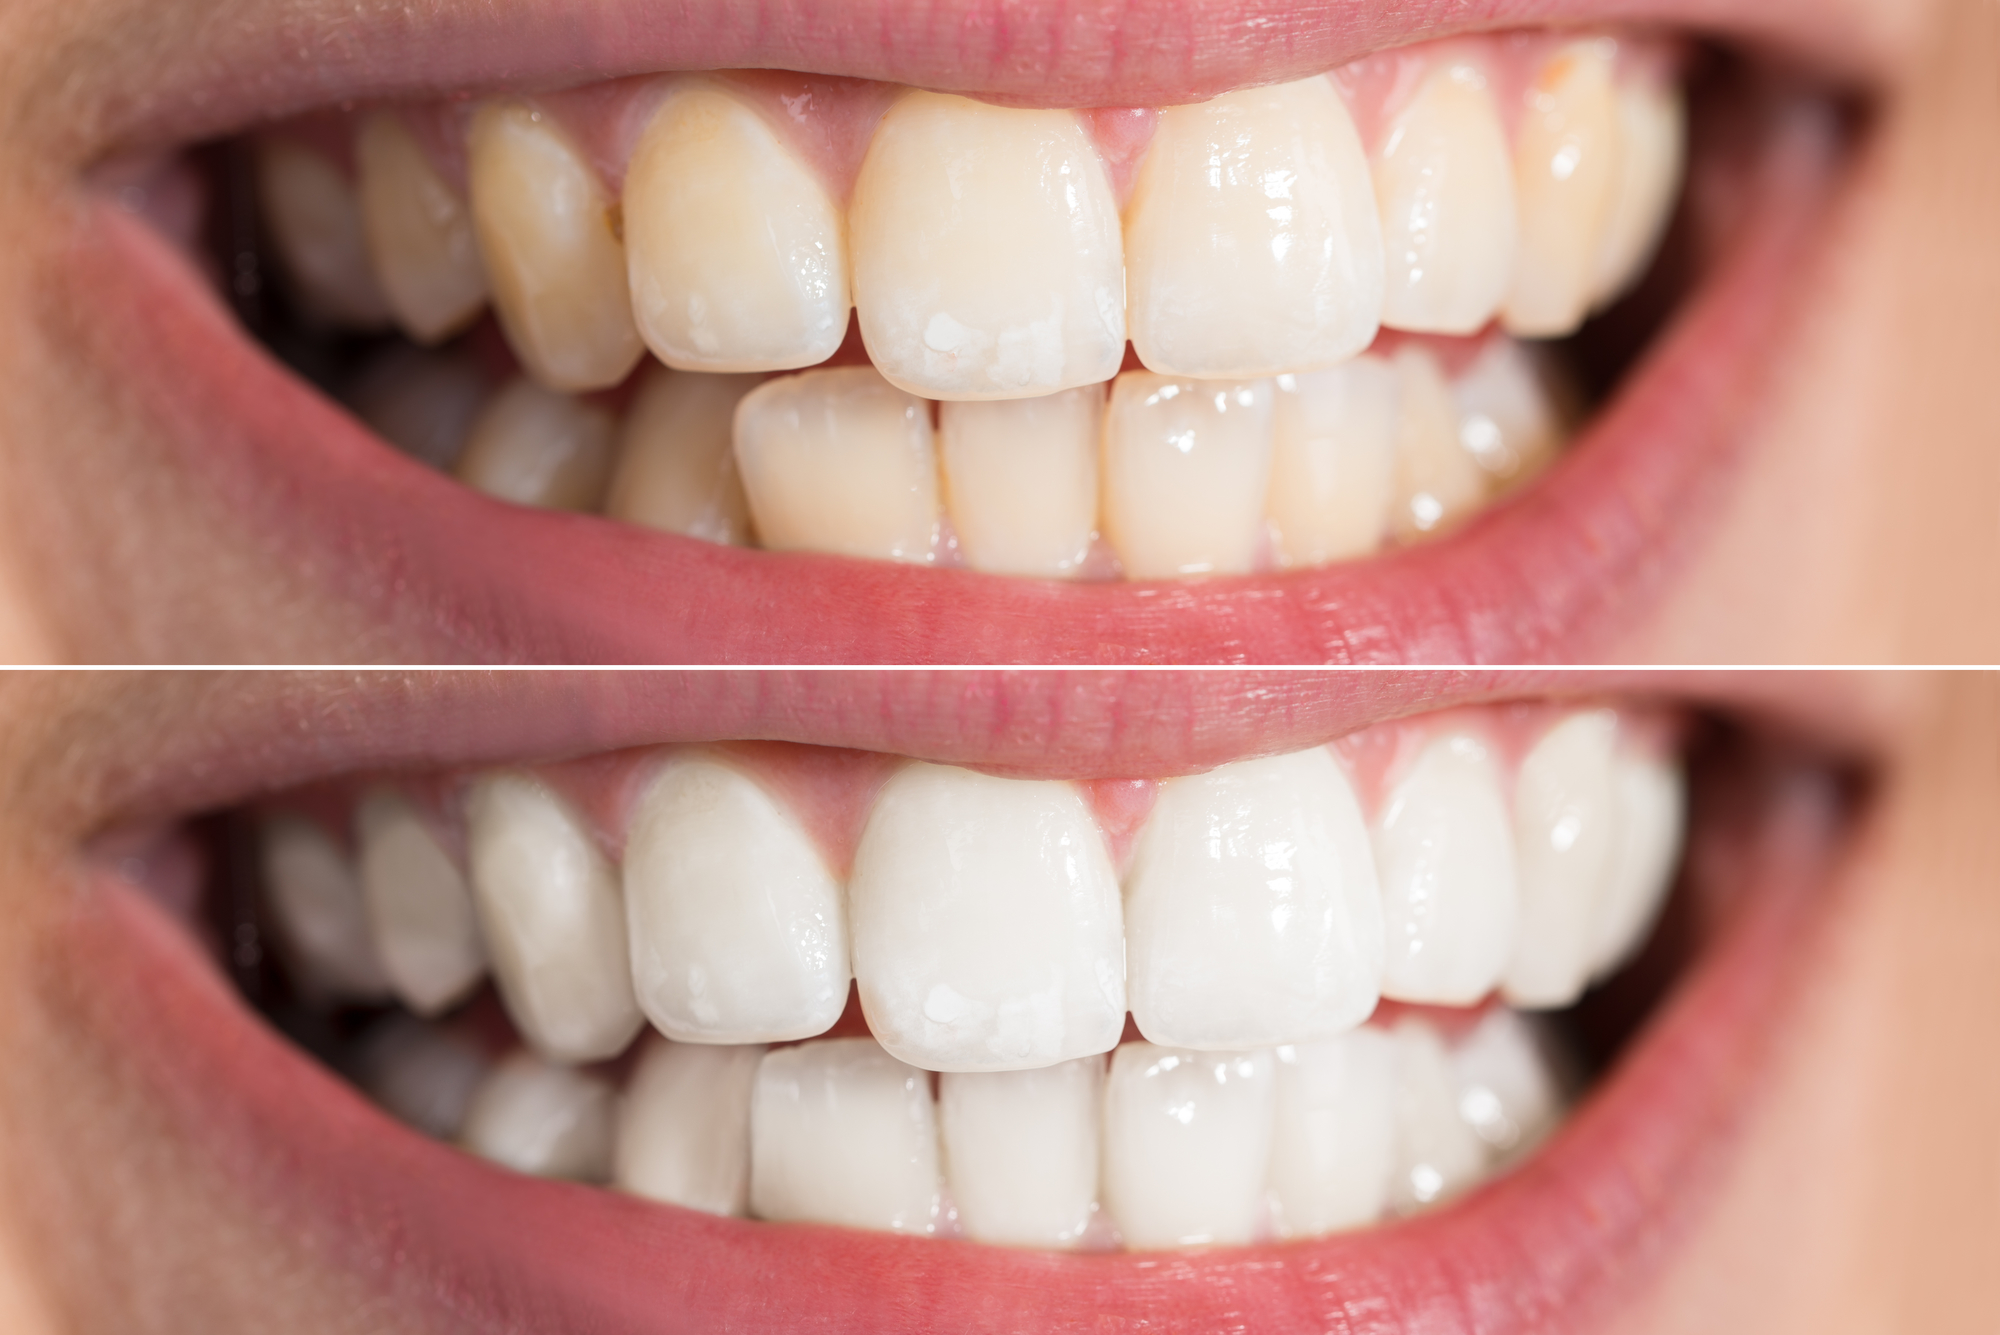 What are the benefits of teeth whitening in North Palm Beach?